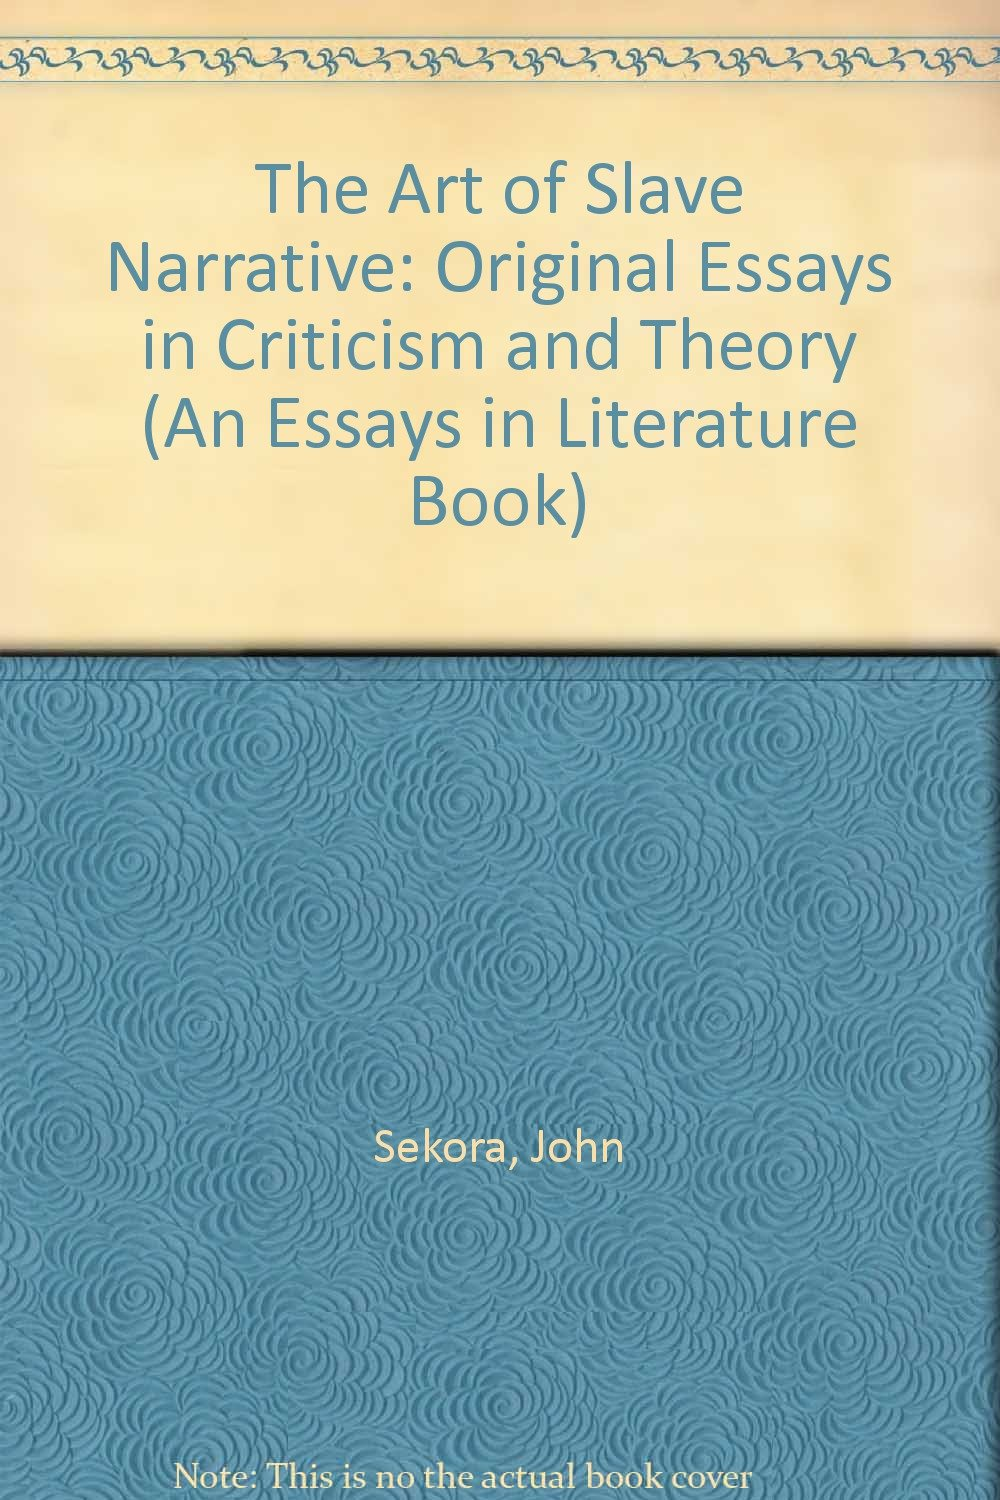 High School Essay Format Amazoncom The Art Of Slave Narrative Original Essays In Criticism And  Theory An Essays In Literature Book  John Sekora Books How To Write A Proposal Essay also High School Essay Sample Amazoncom The Art Of Slave Narrative Original Essays In Criticism  Wonder Of Science Essay